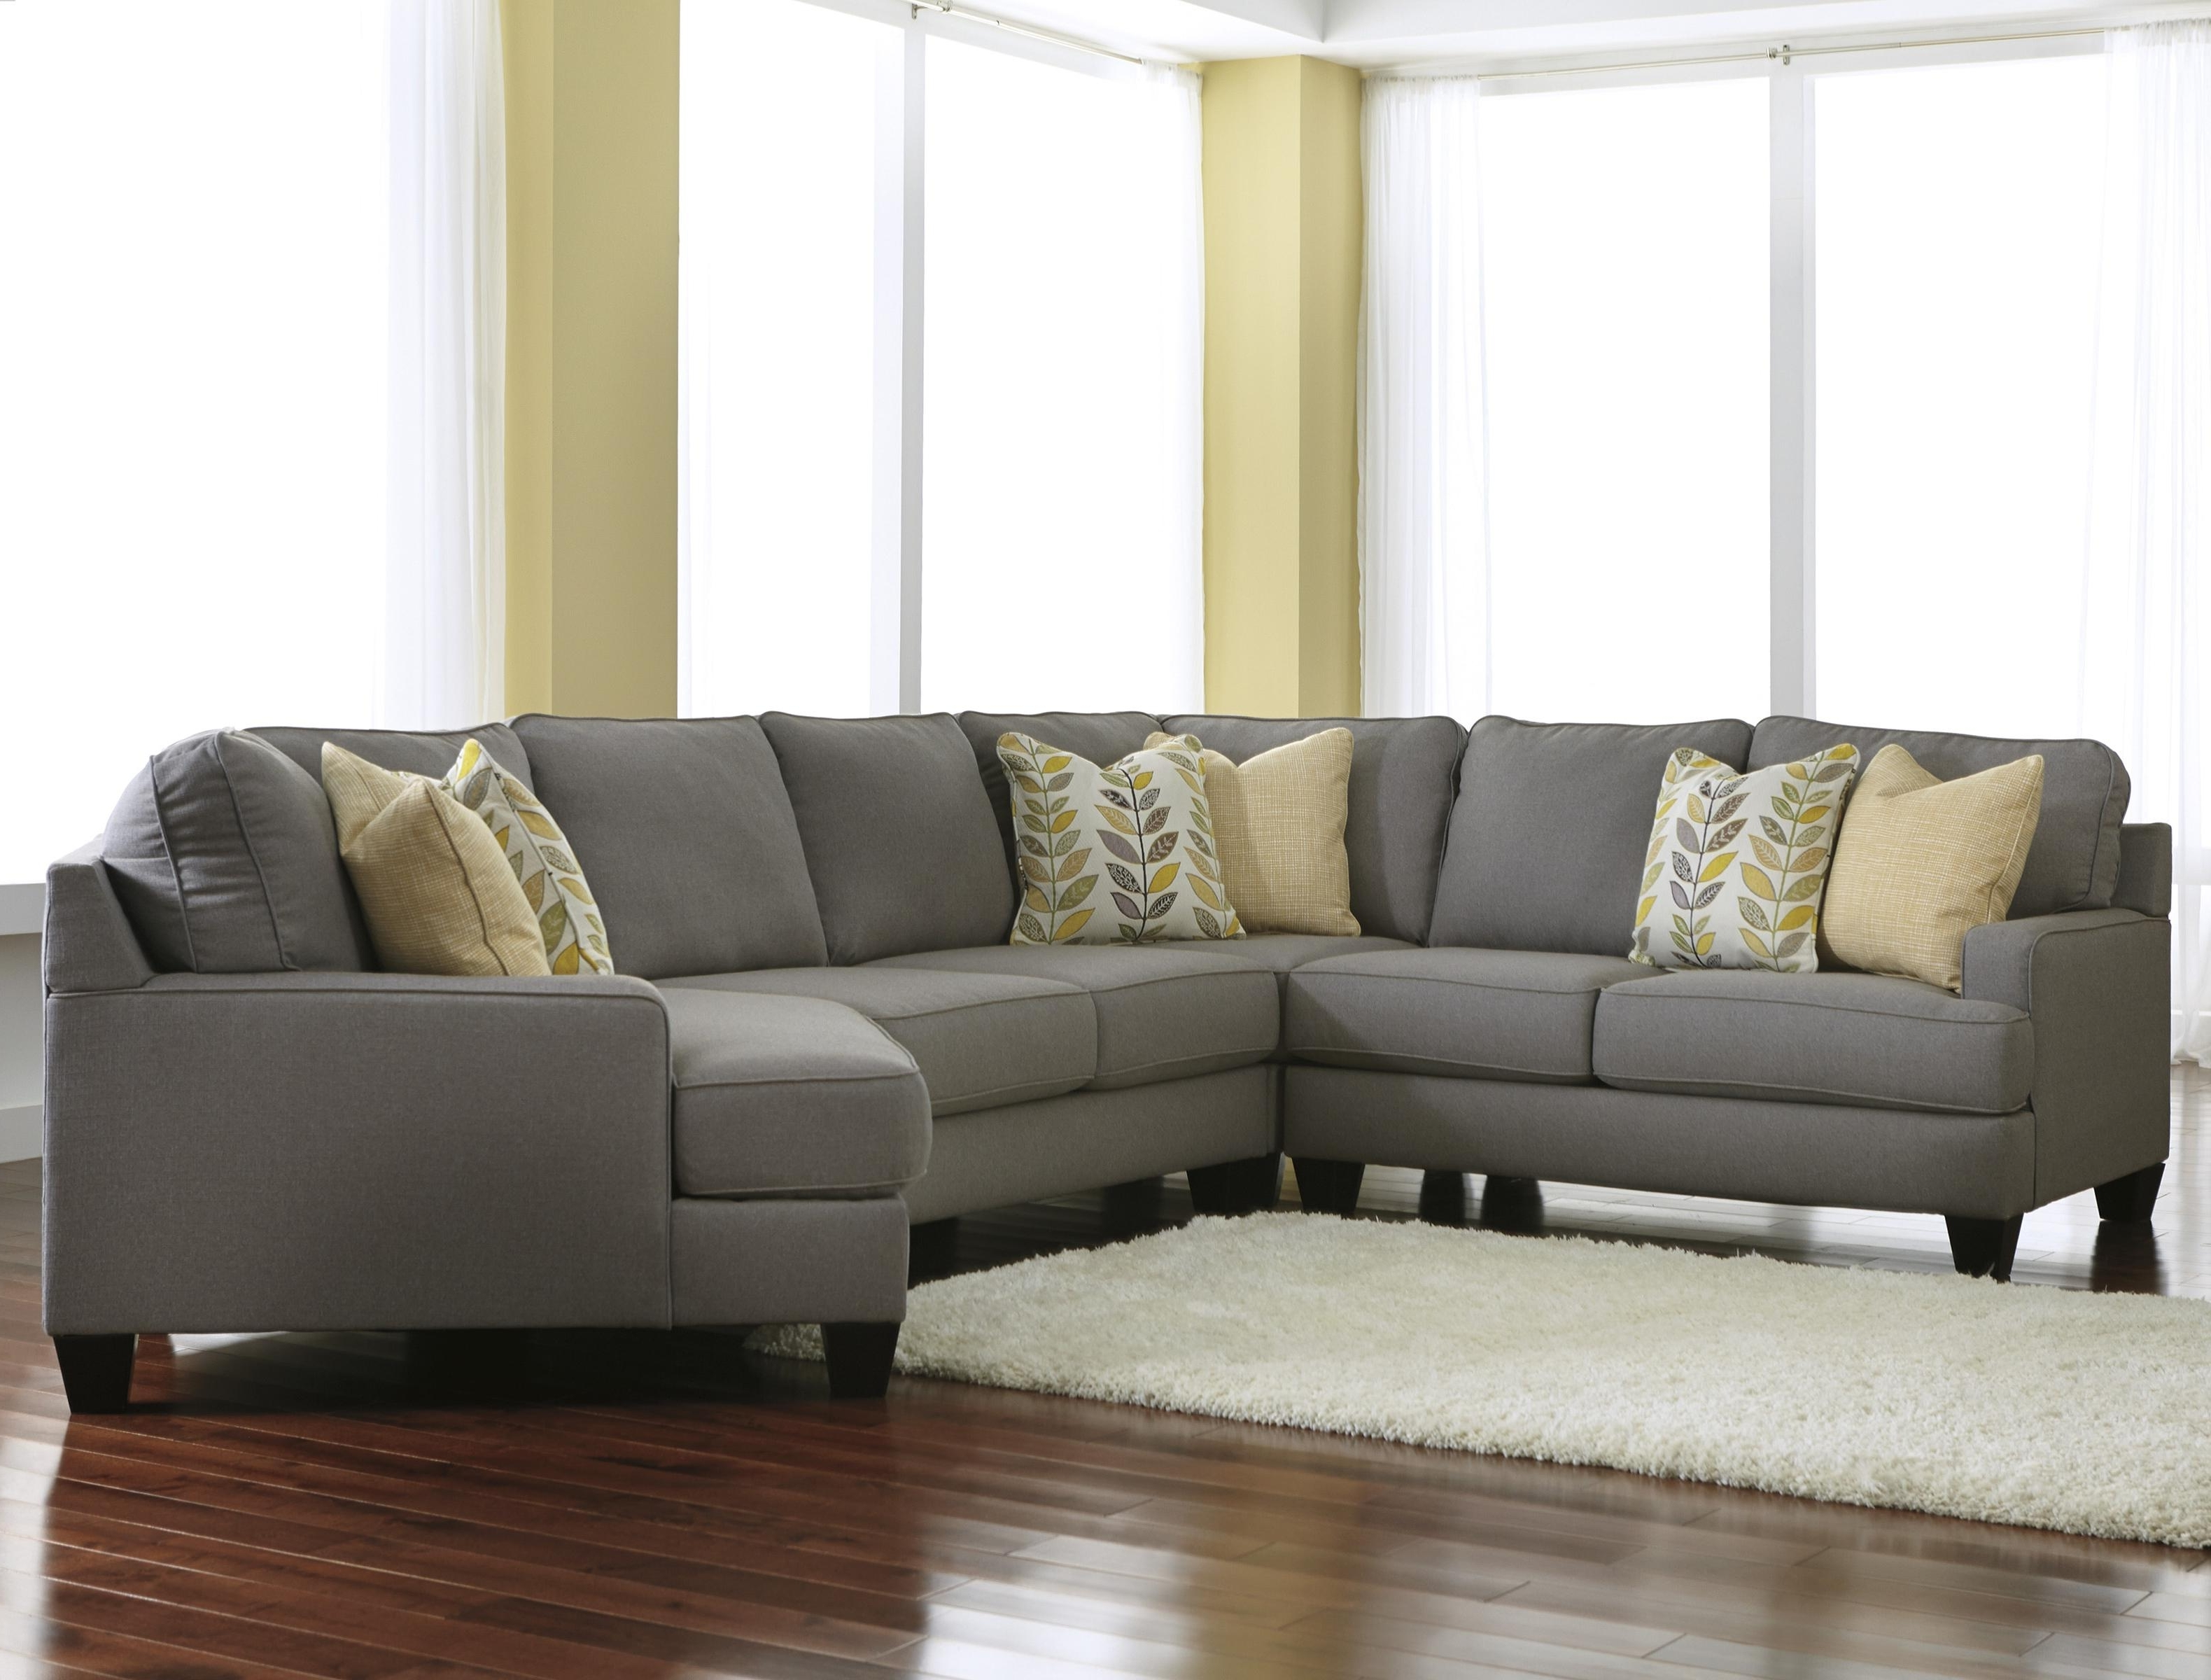 Well Known Modern 4 Piece Sectional Sofa With Right Cuddler & Reversible Seat Regarding Gardiners Sectional Sofas (View 12 of 20)